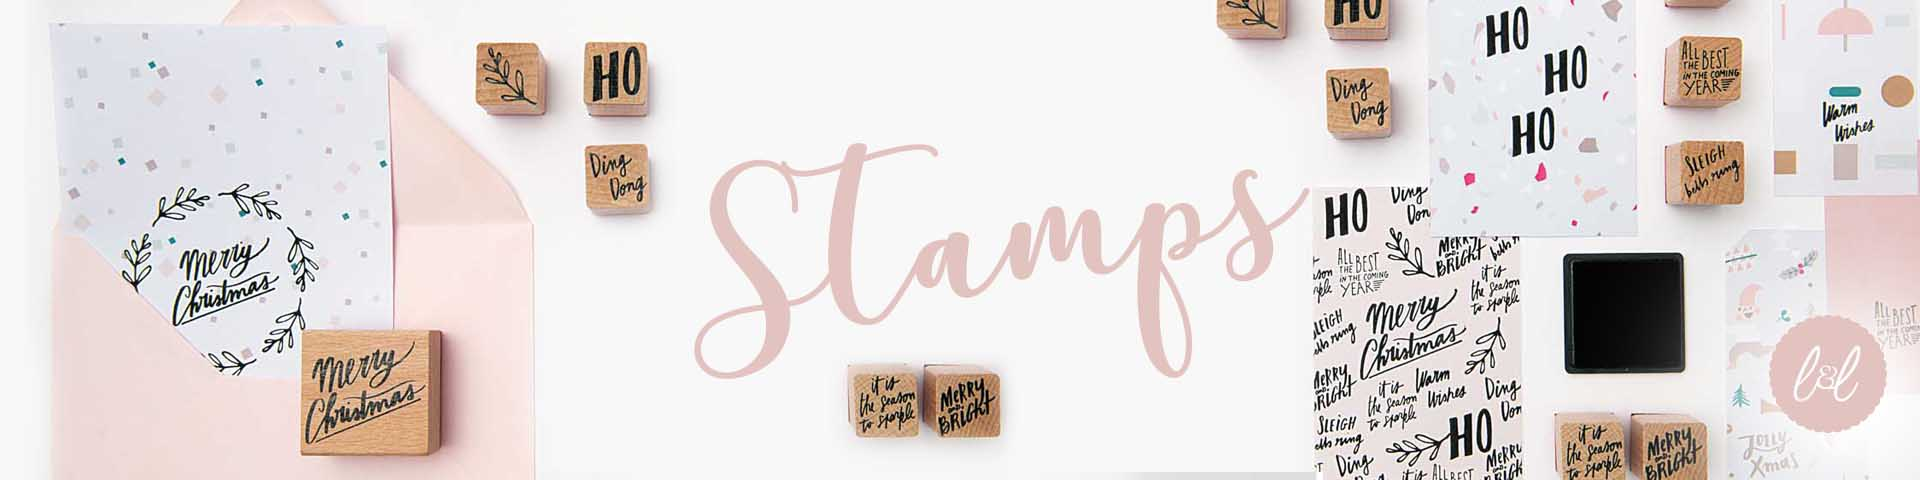 Christmas Stamping and Craft Ideas